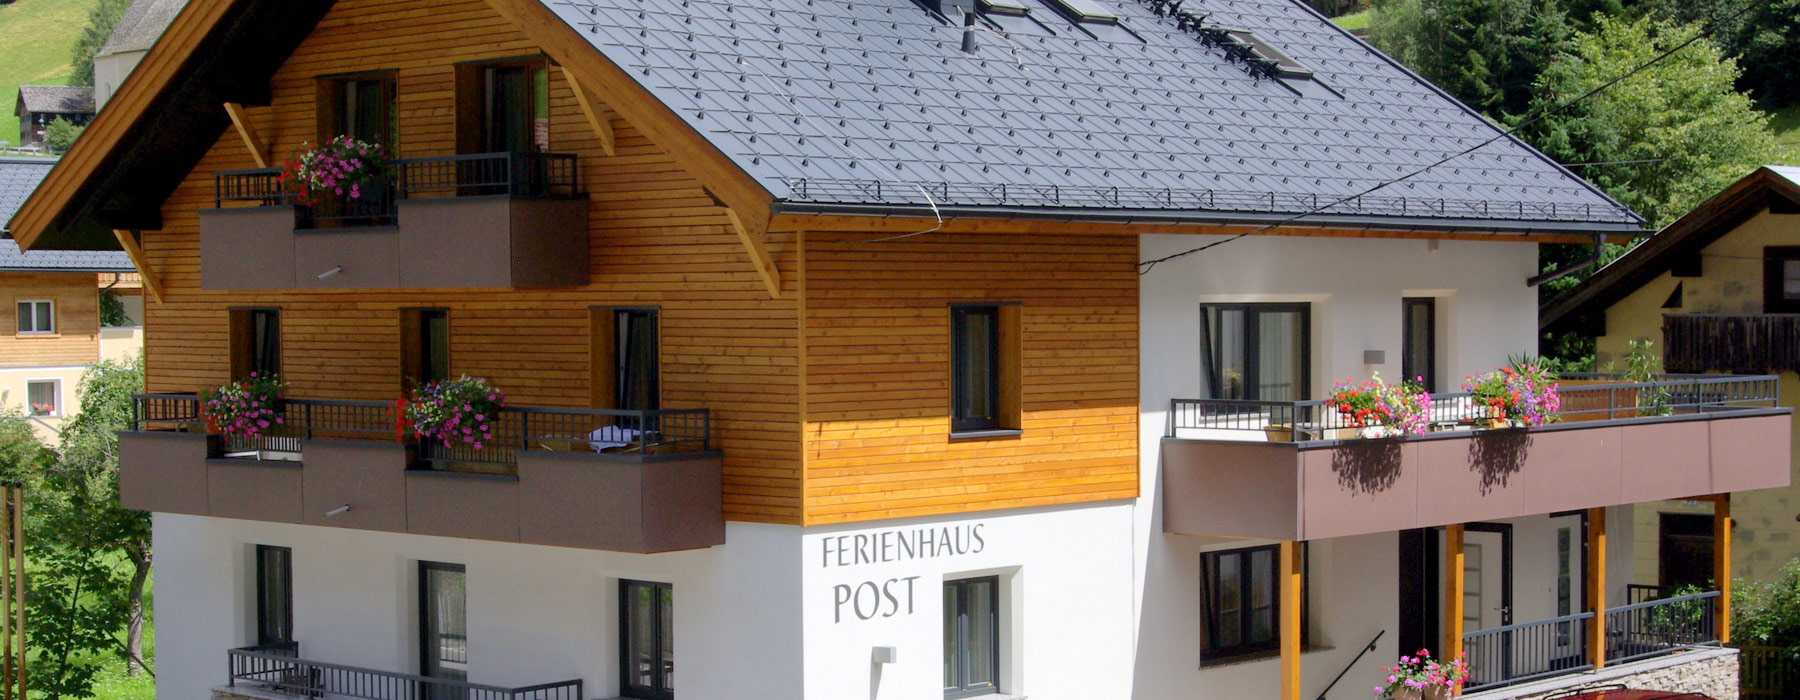 Ferienhaus Post: double rooms, triple rooms, family rooms Ischgl